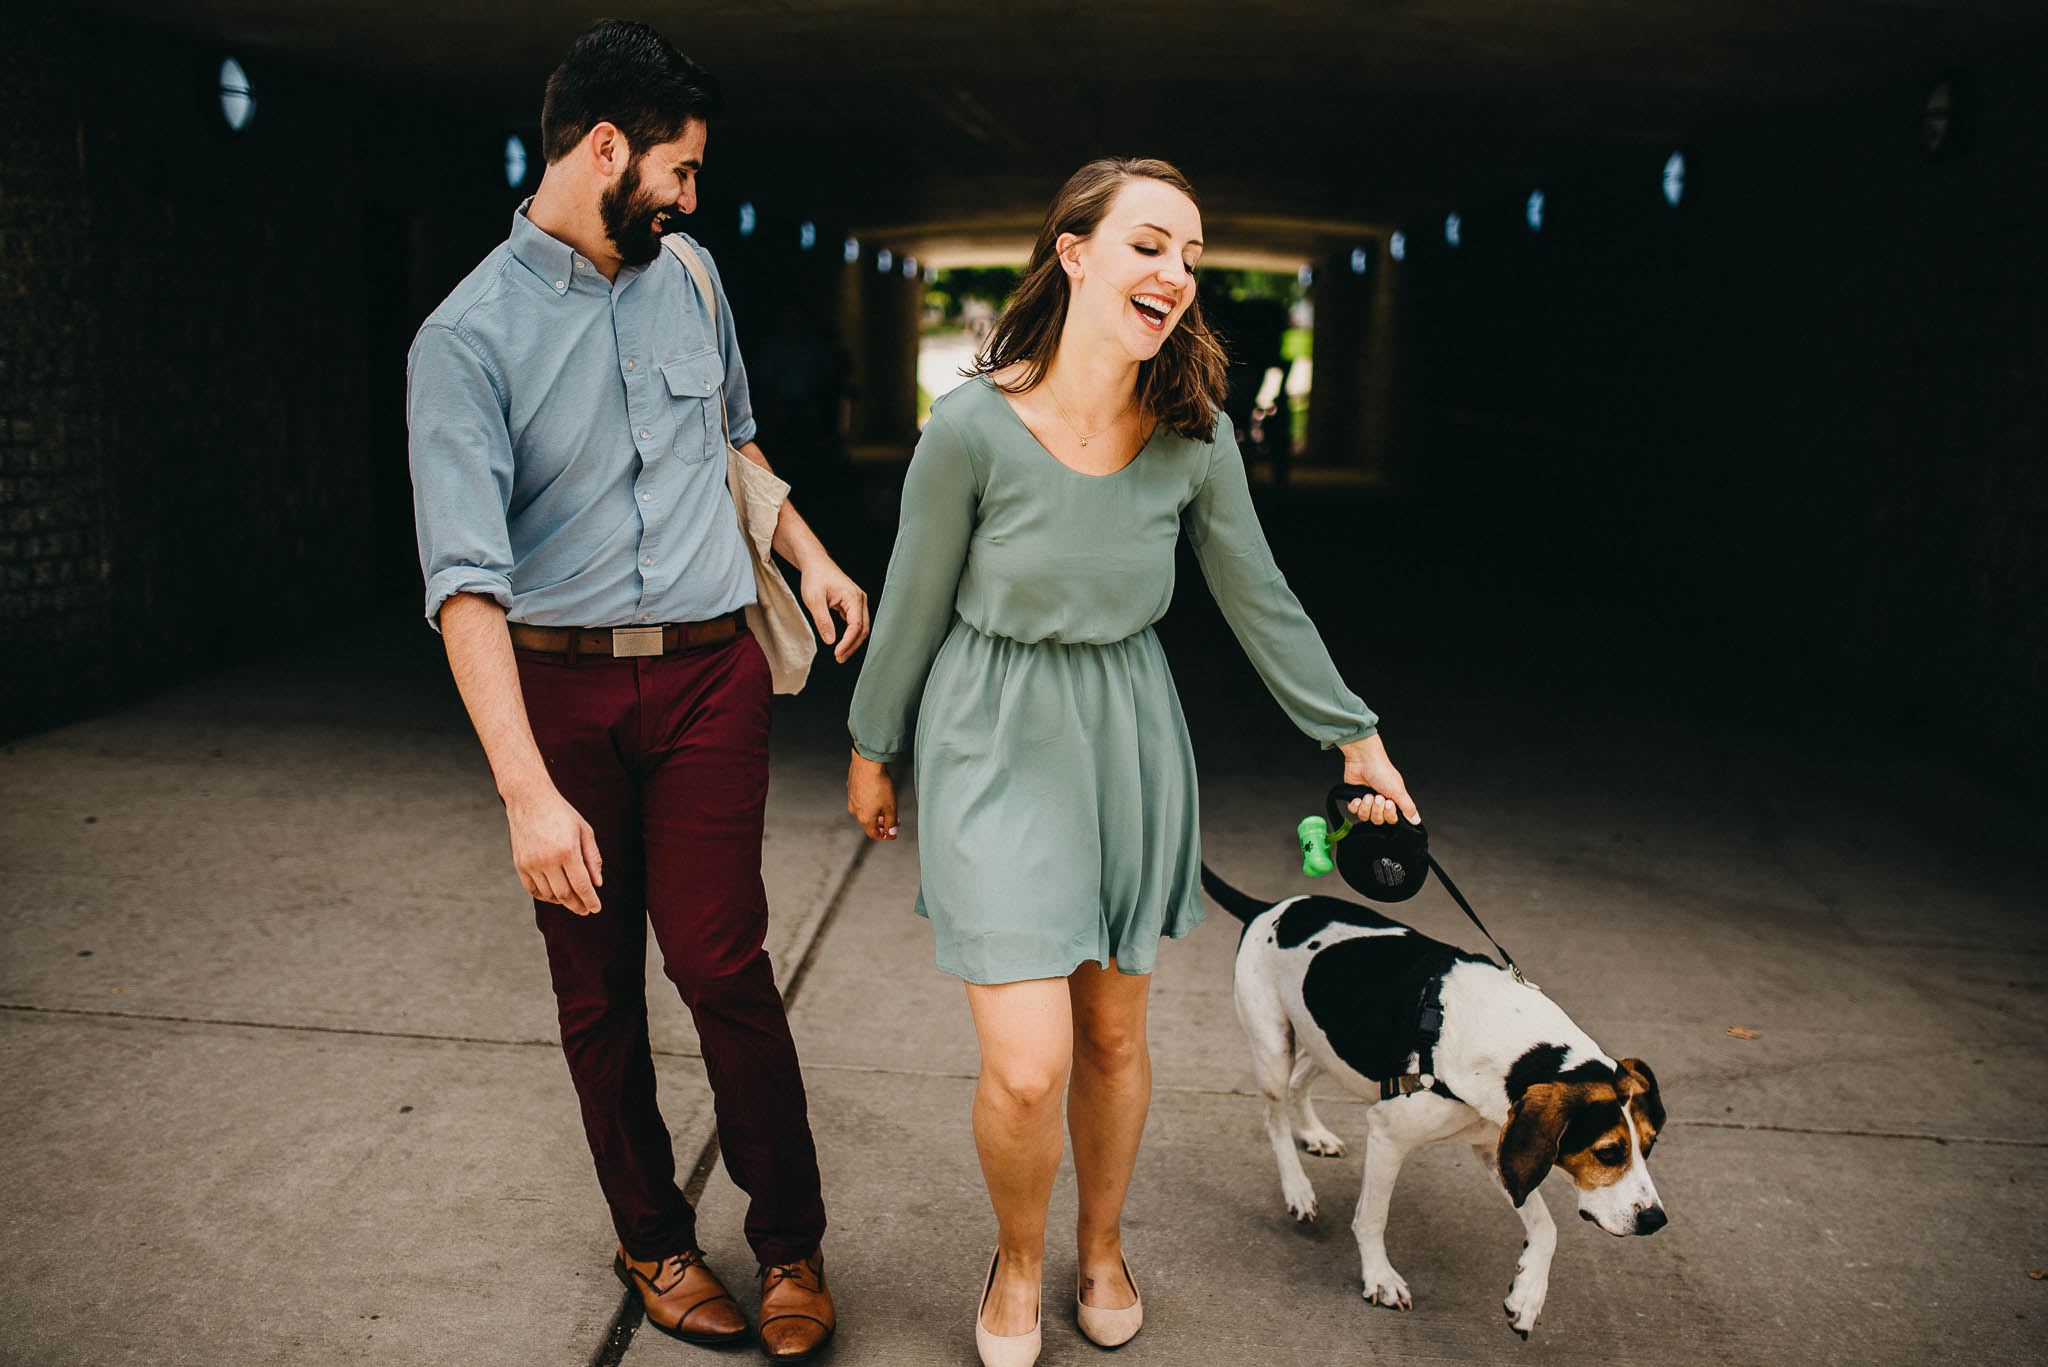 engaged couple laughing as dog barks at horses